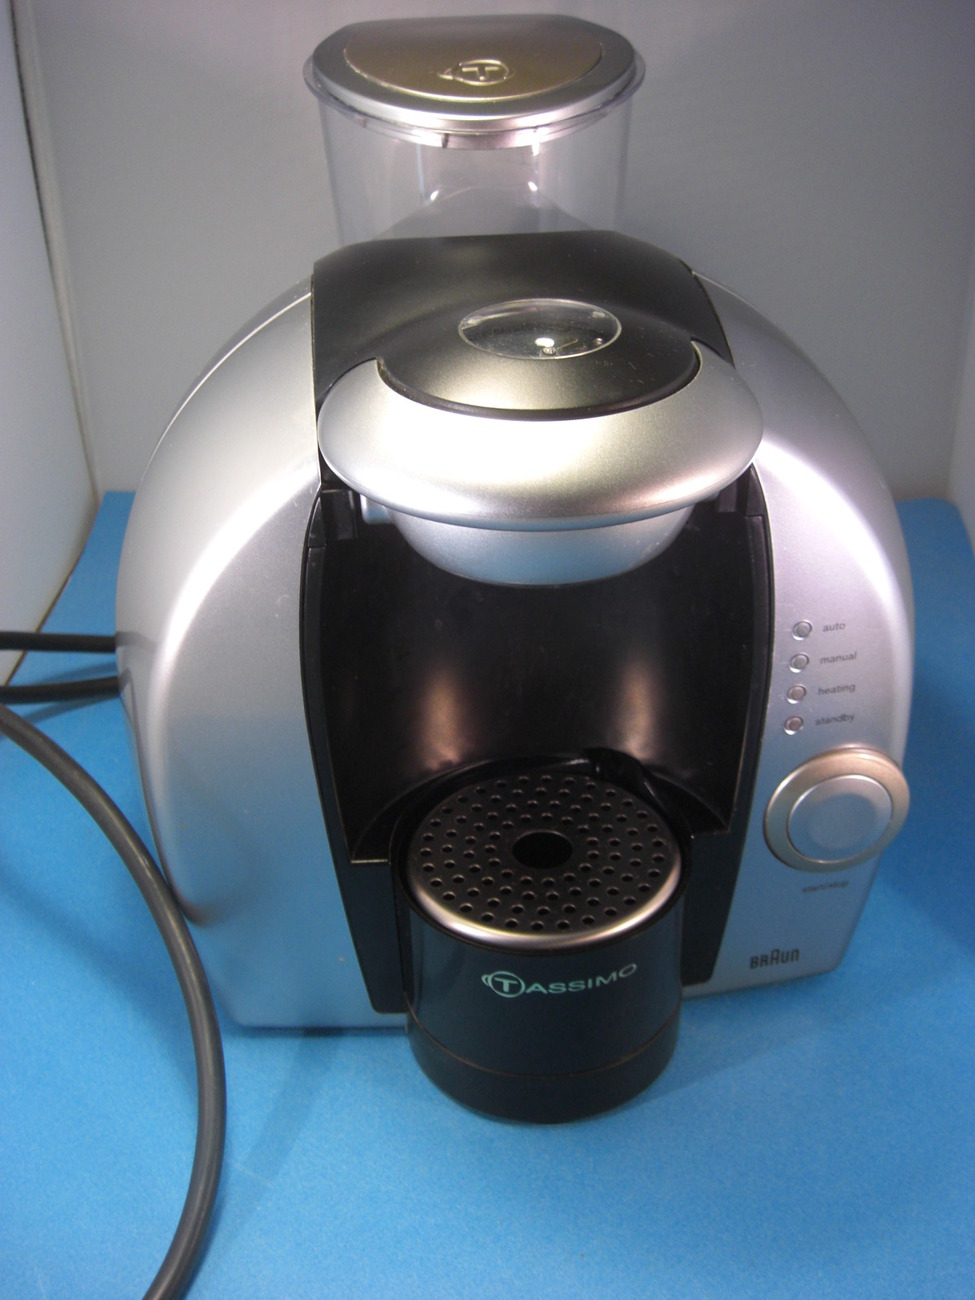 Coffee Maker Braun Tassimo : Braun Tassimo One Cup Coffee Maker Model 3107 - Coffee Makers